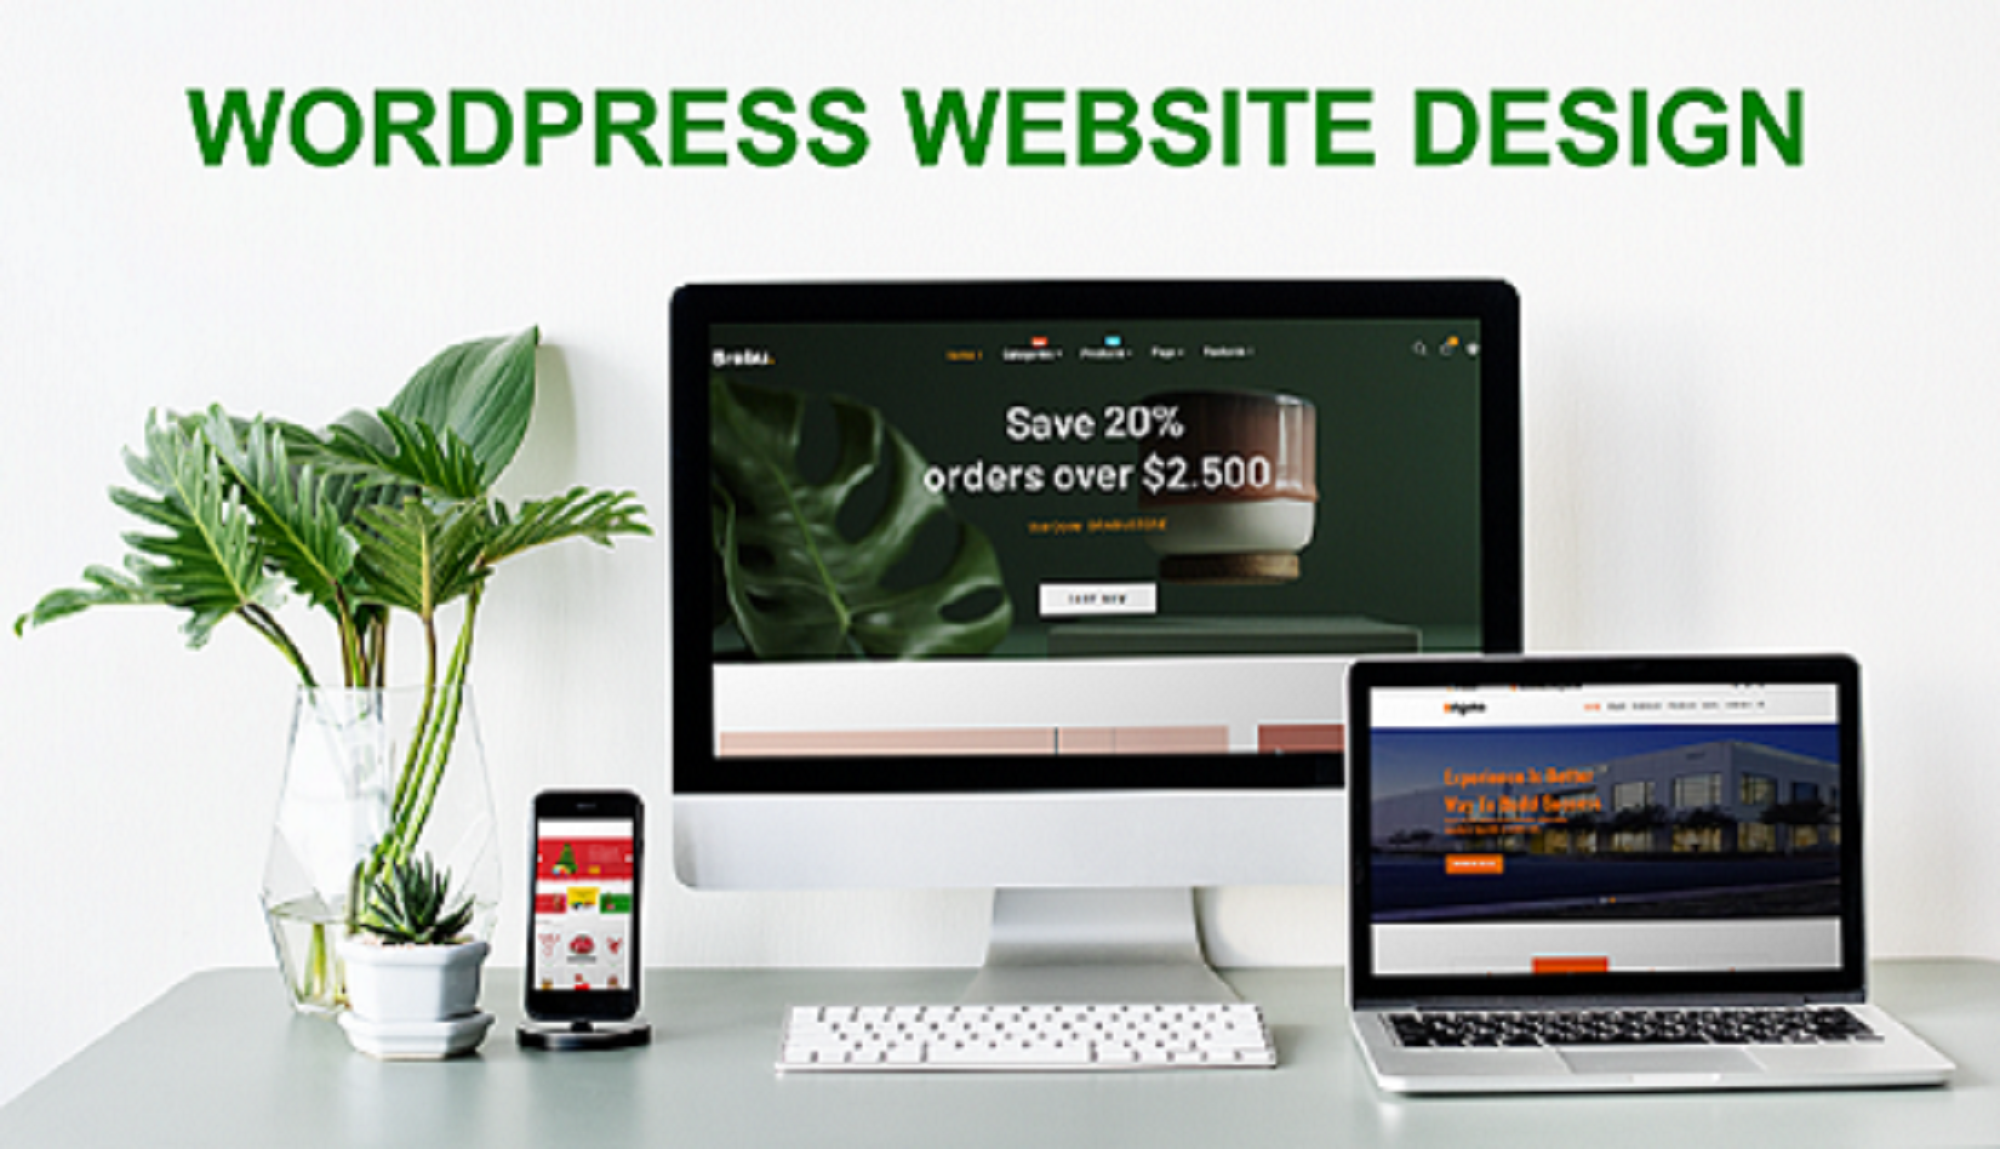 I will do a responsive WordPress website design and customization